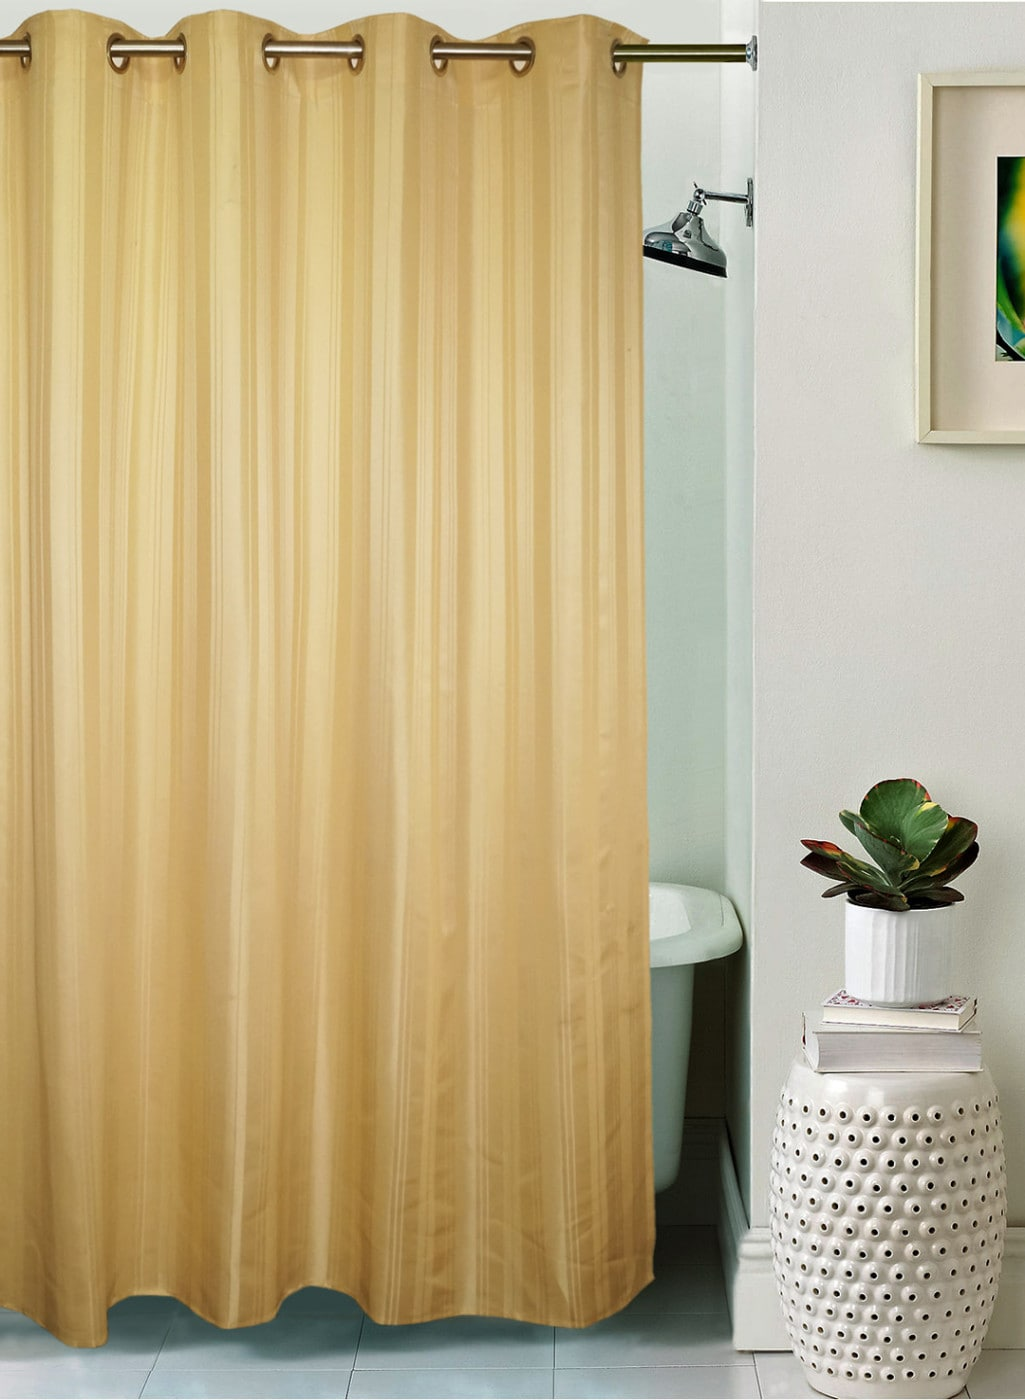 Lushomes Gold Toned Striped Shower Curtain